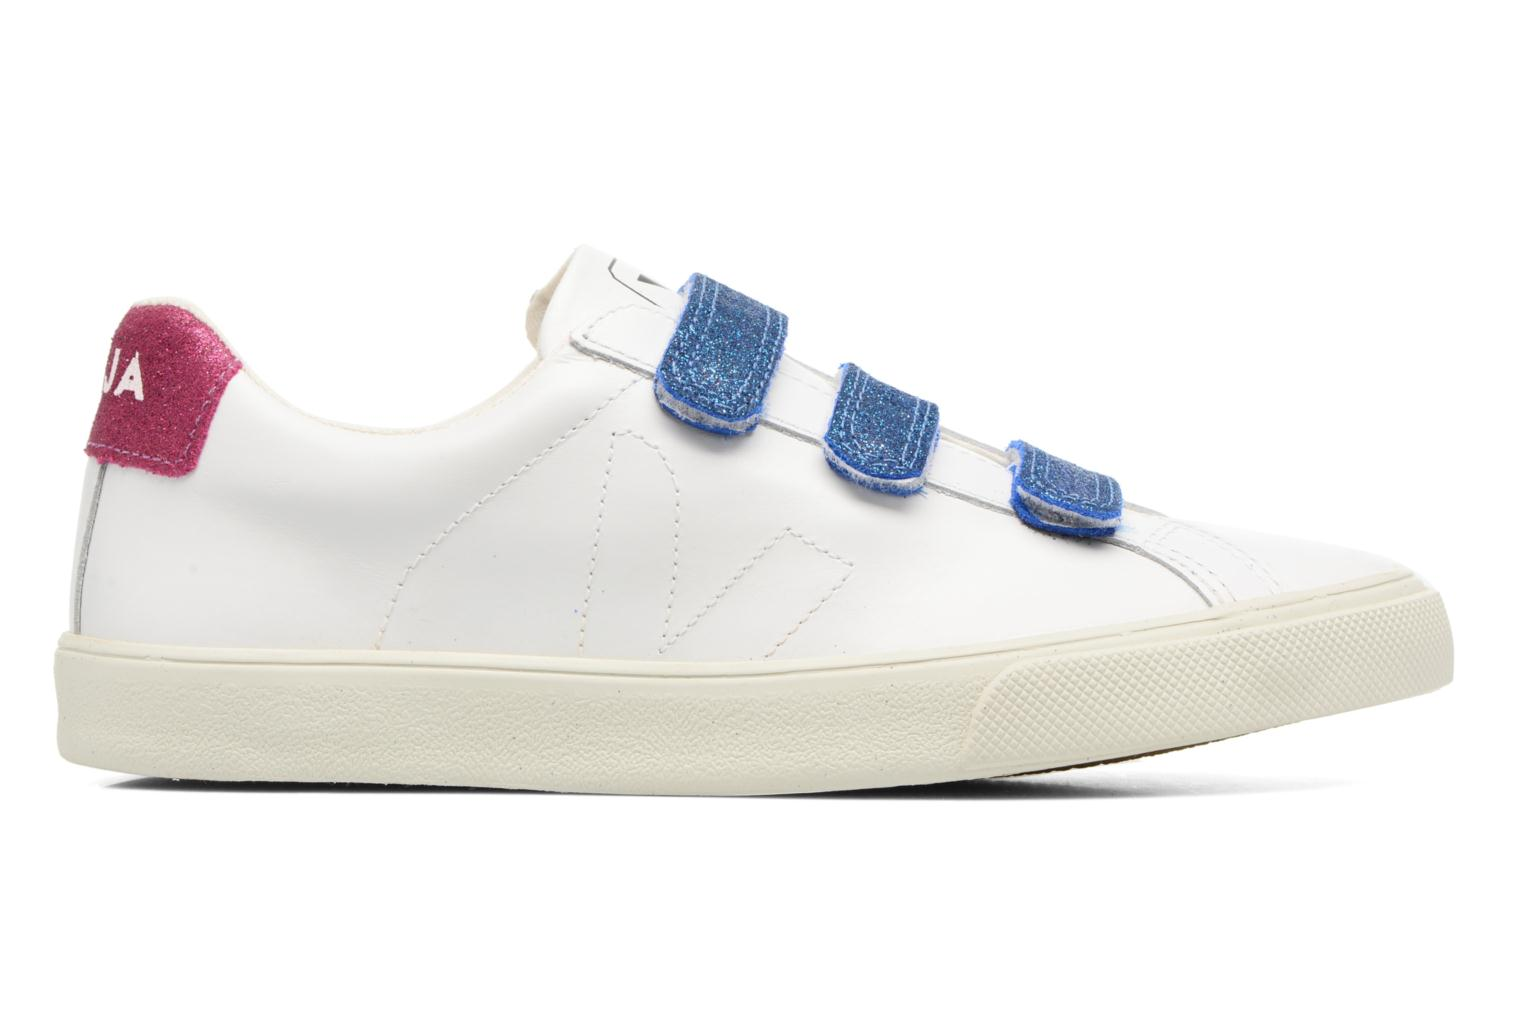 3 LOCK LEATHER EXTRA WHITE VELCRO NEON PIERRE